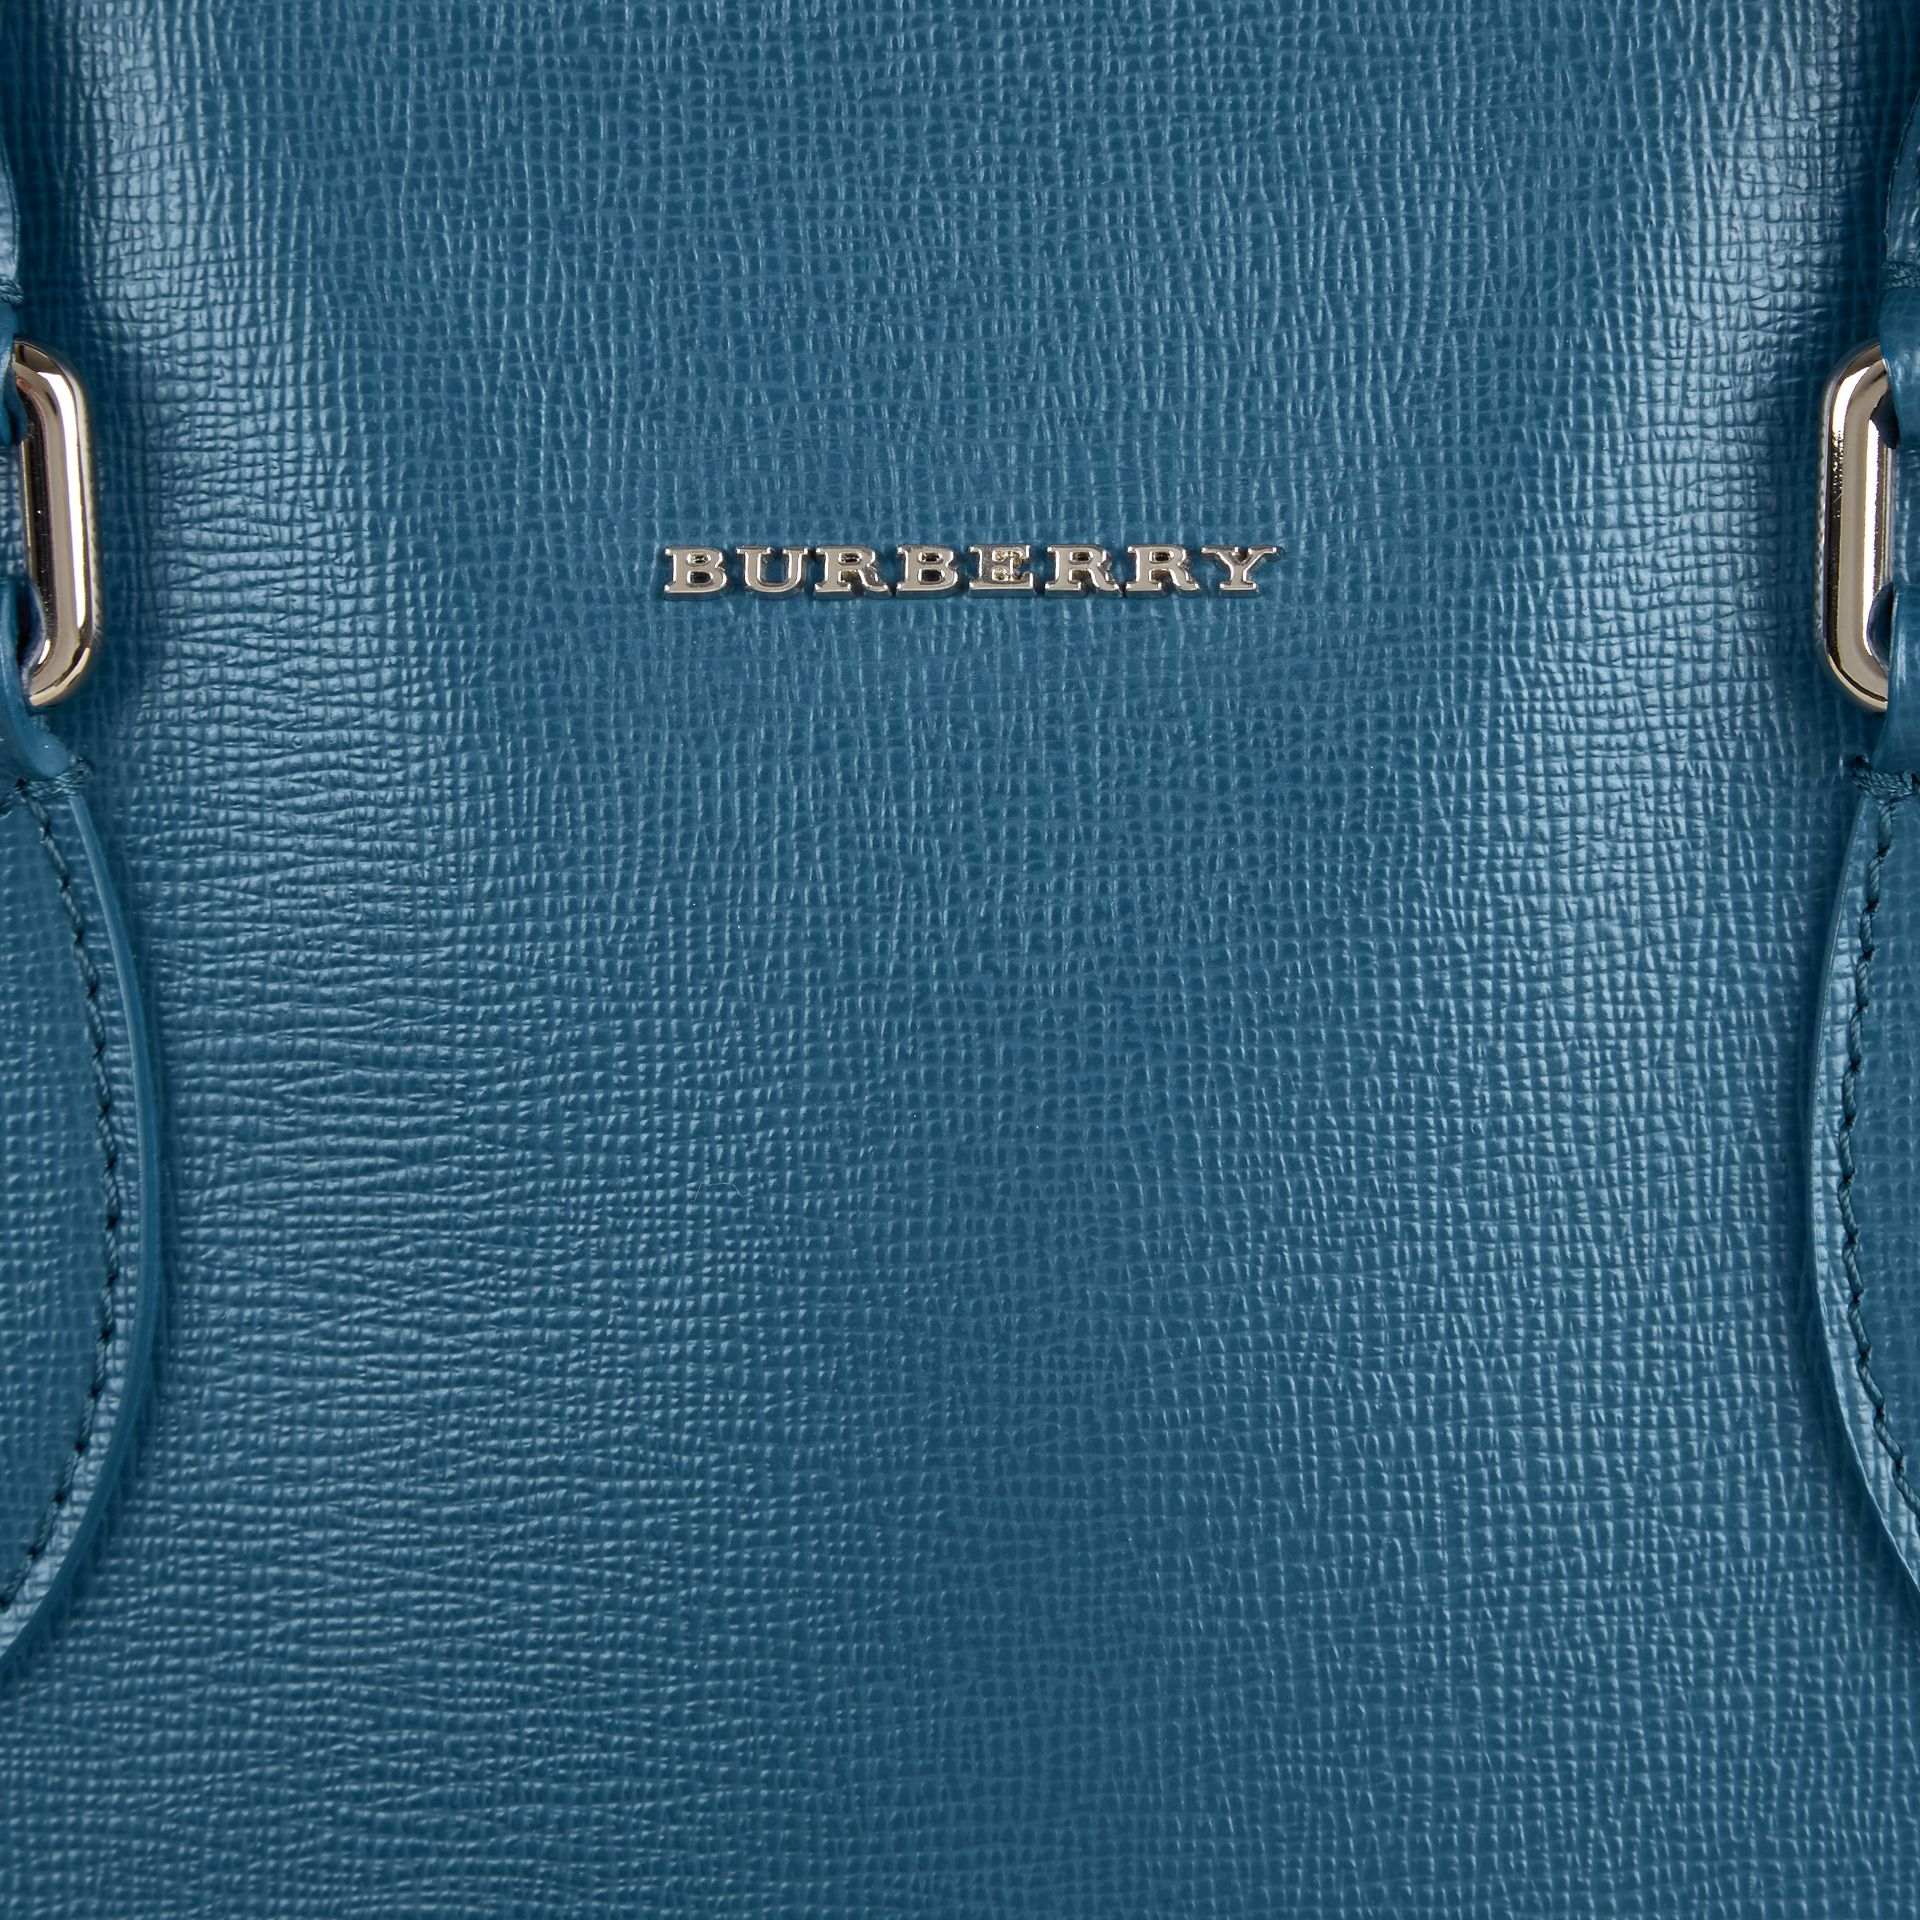 London Leather Tote Bag in Mineral Blue - gallery image 2